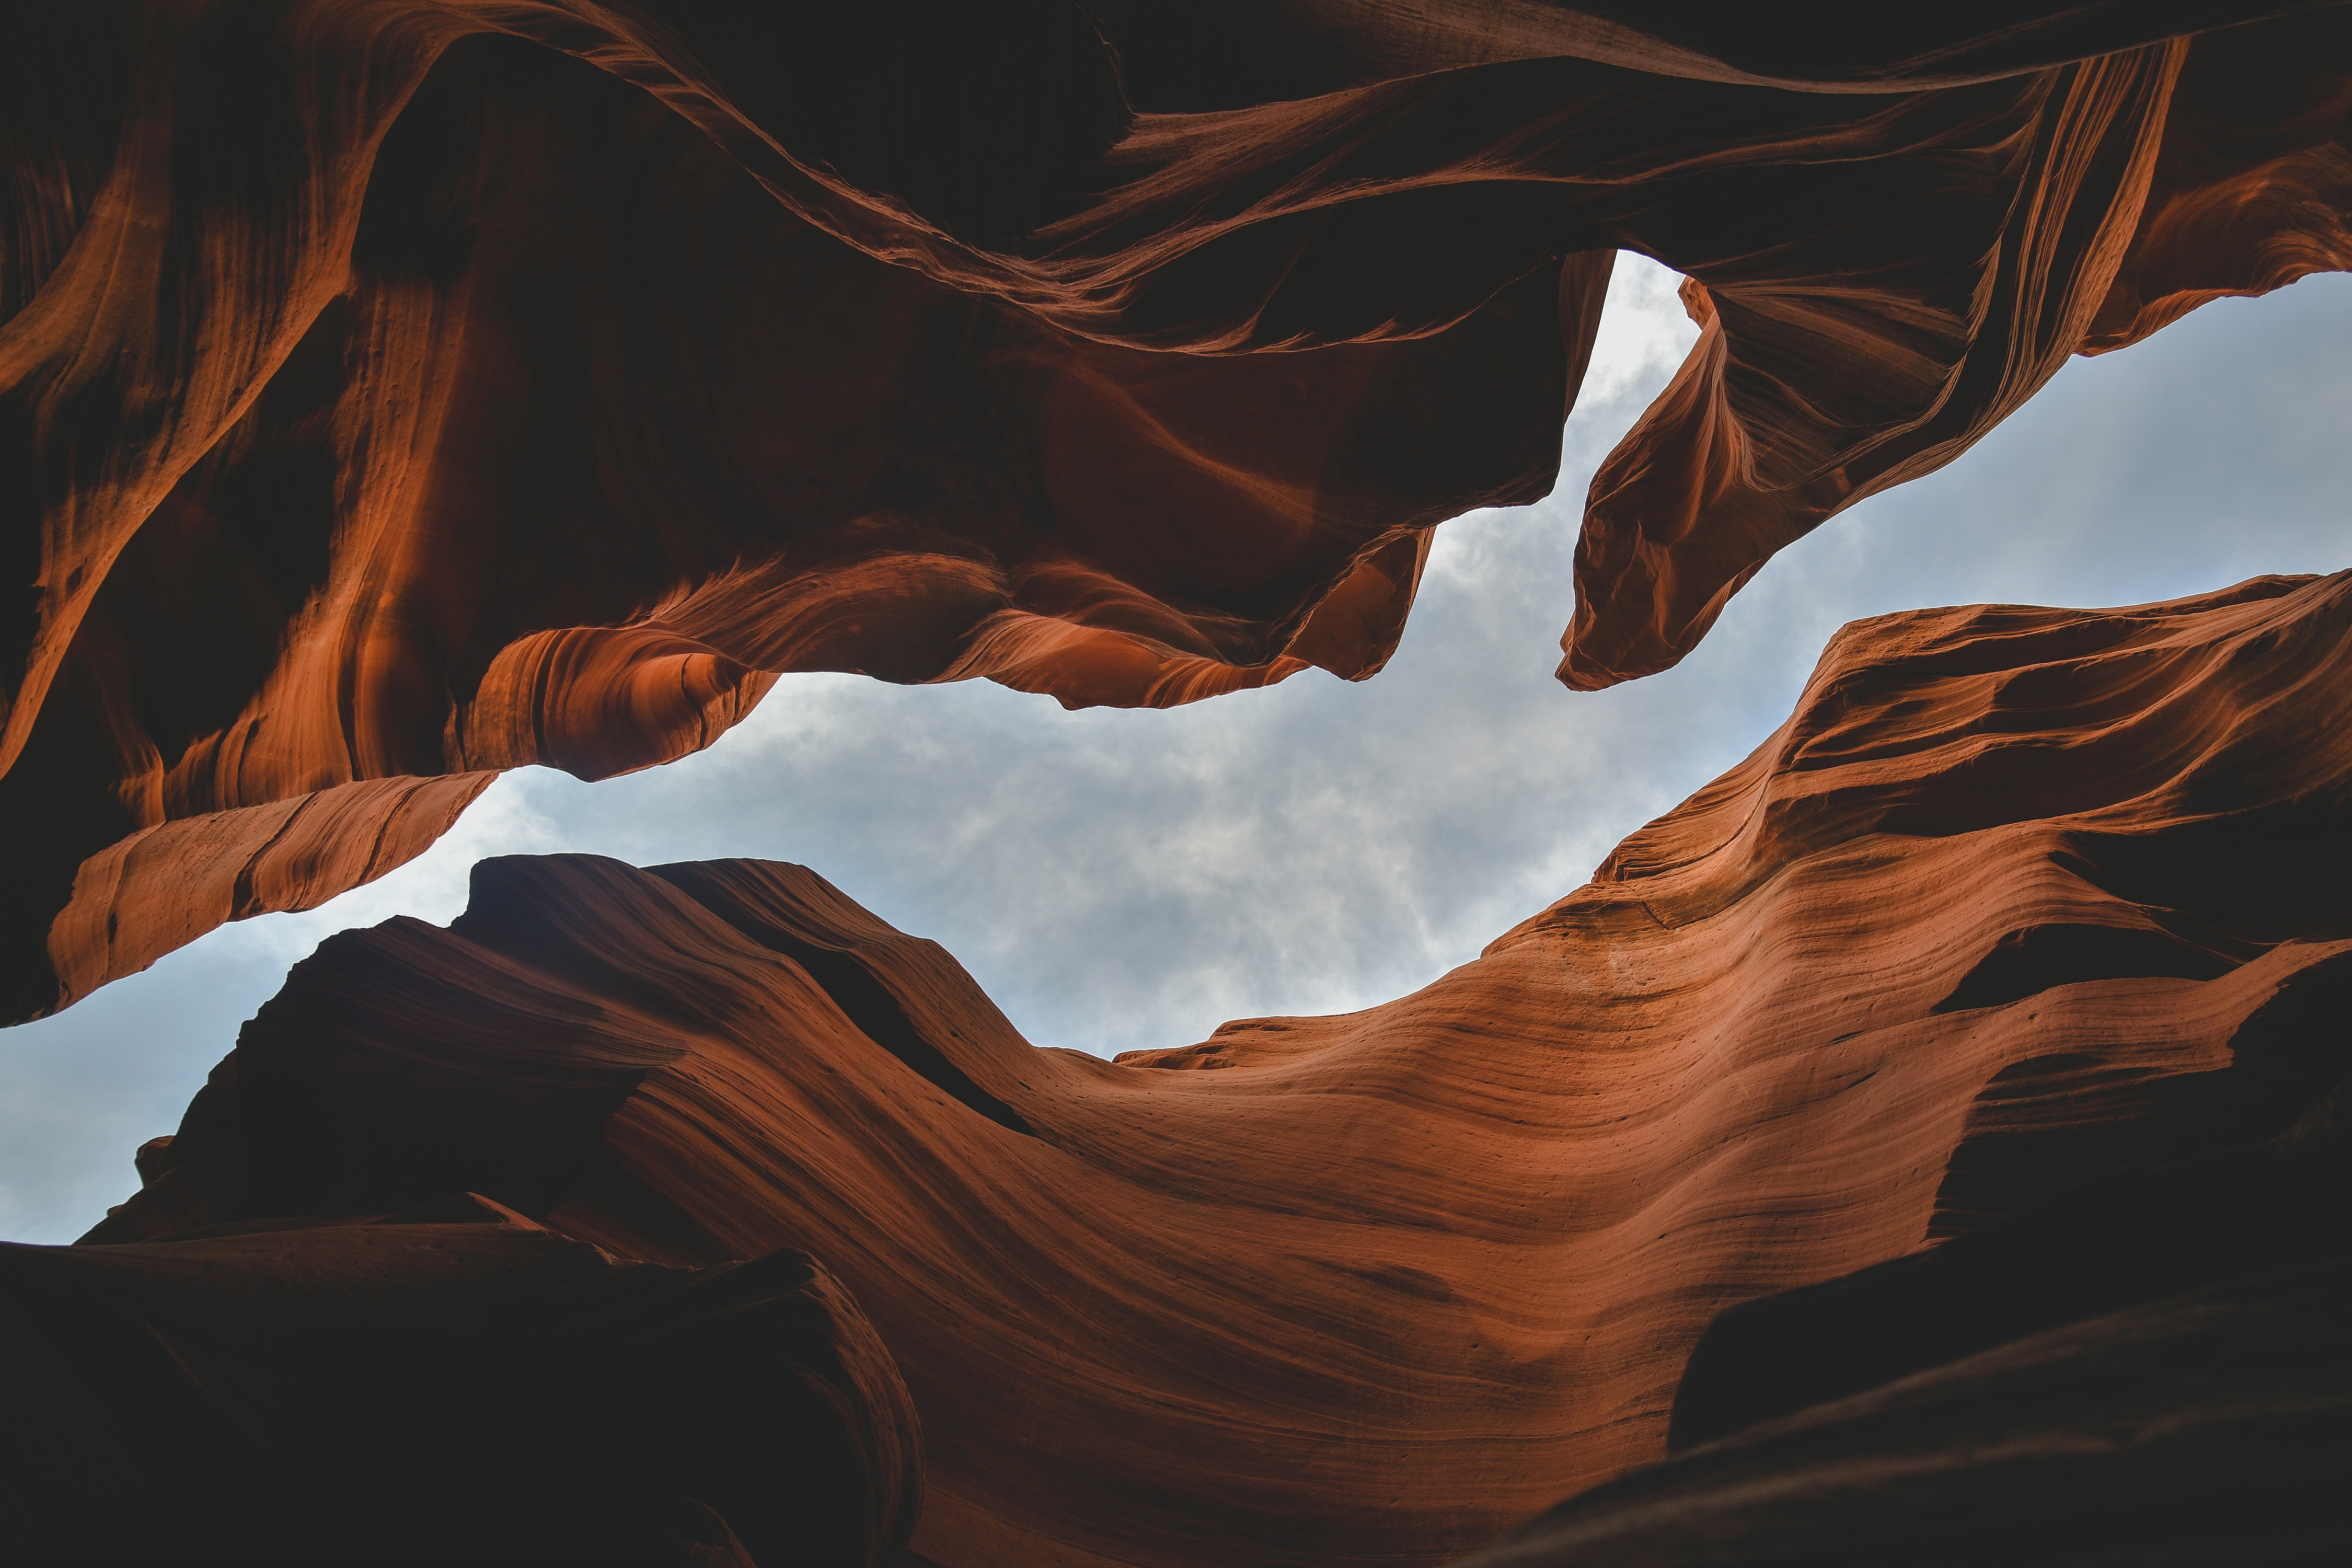 83904 download wallpaper Nature, Canyon, Rocks, Sky screensavers and pictures for free